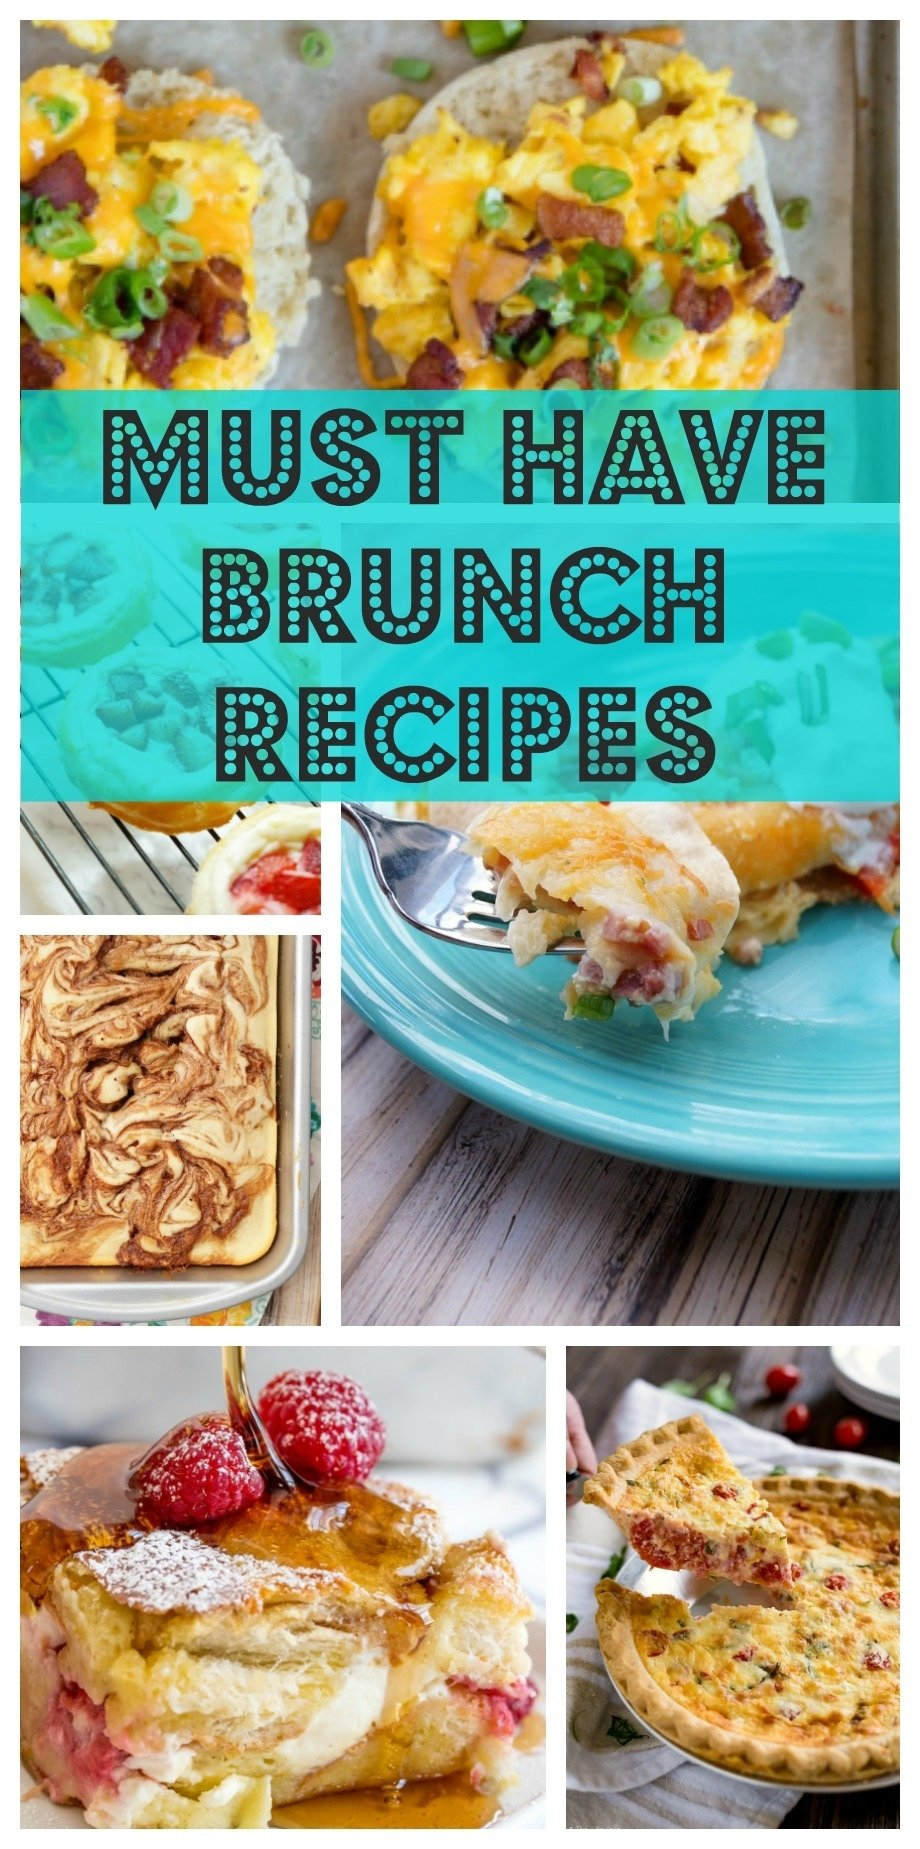 10 Great Easy Brunch Ideas For A Crowd delicious sweet and savory brunch recipes 2020